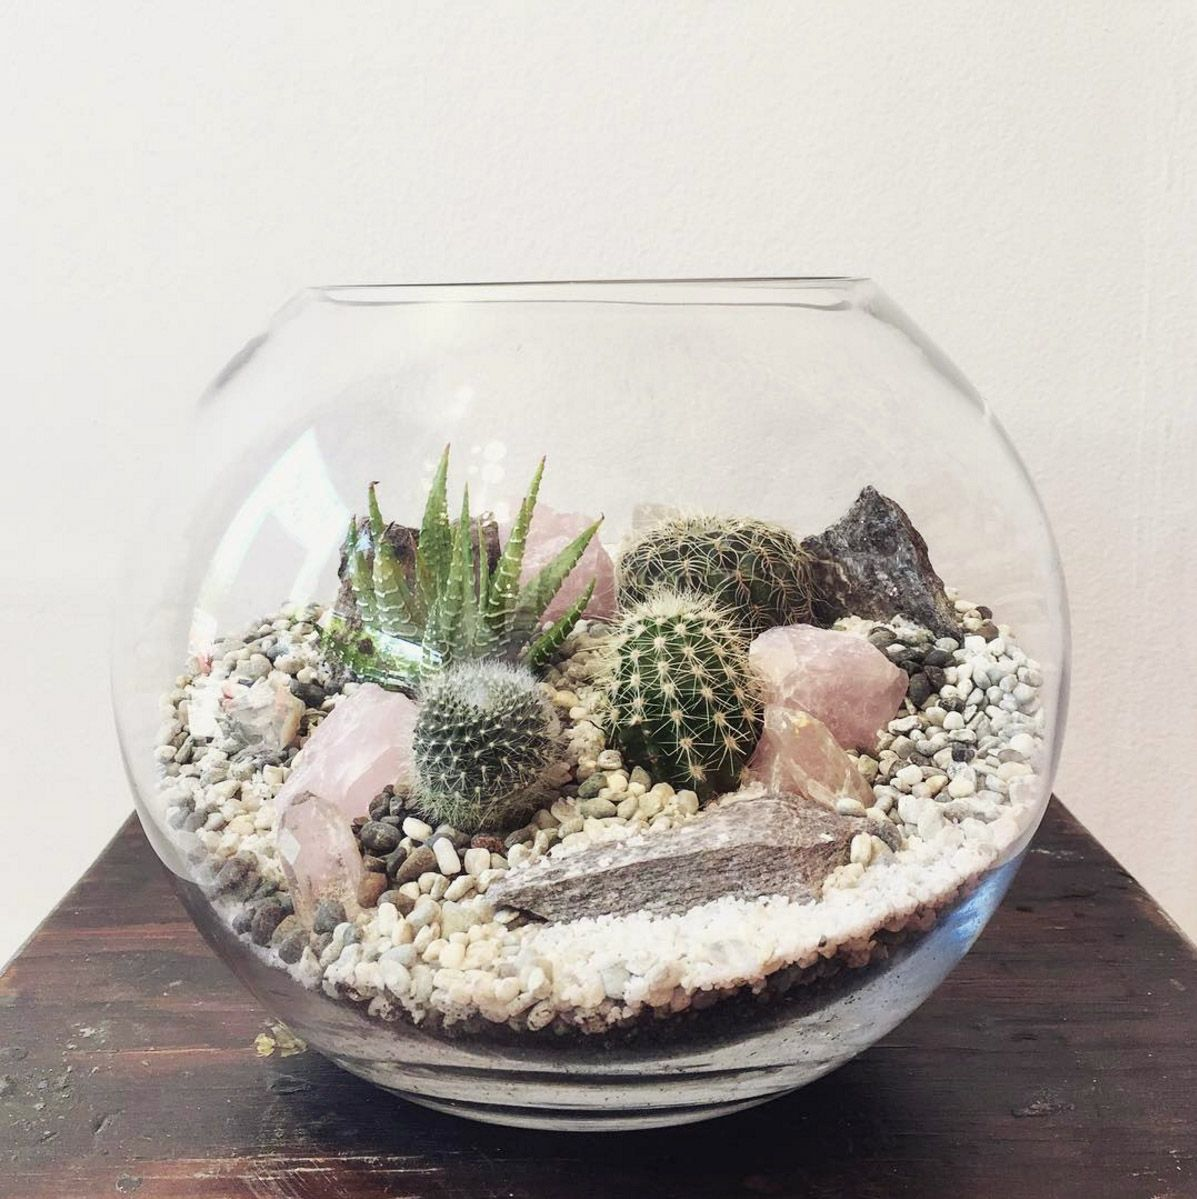 Crystal Desert World Terrarium Small Bioattic Specialty Plants